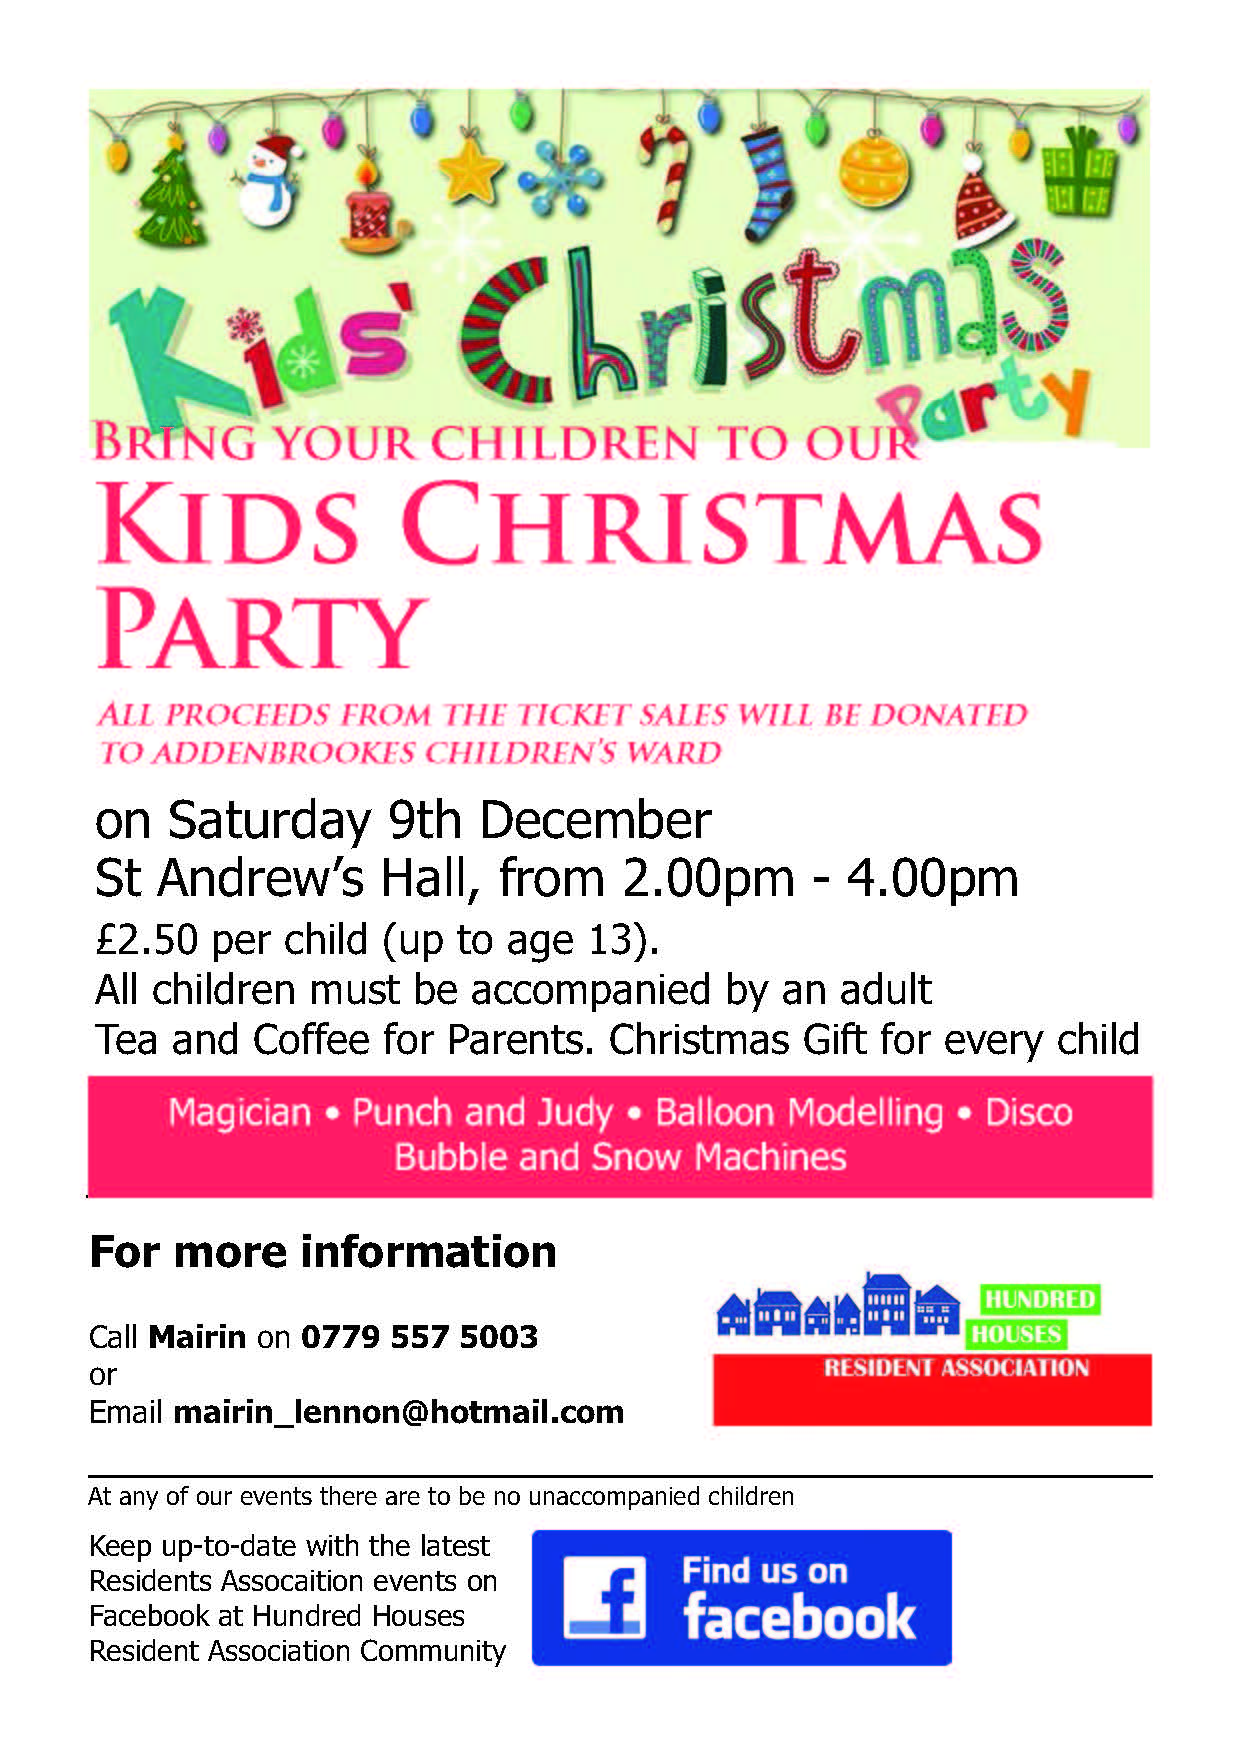 Children's Christmas Party, 9th December